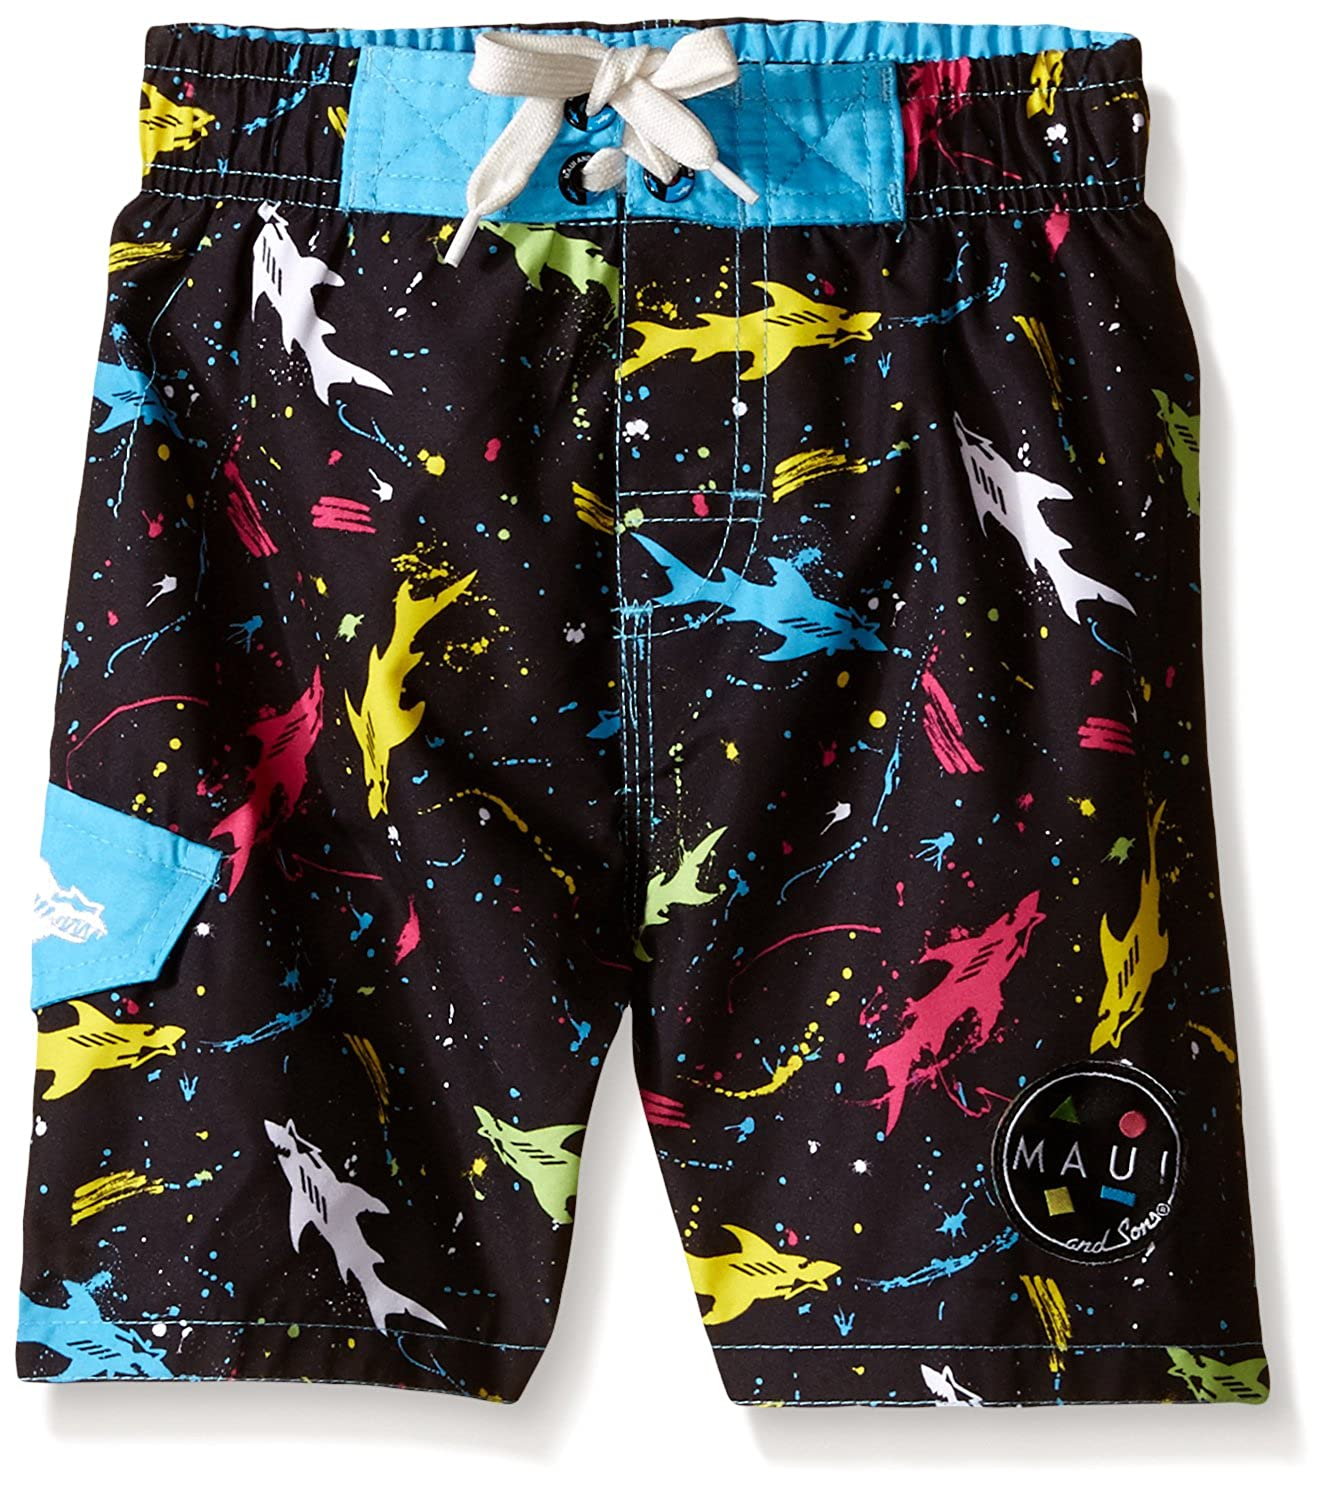 Maui & Sons Boys' Swim Trunk With Multi Color Shark Print 301MZ